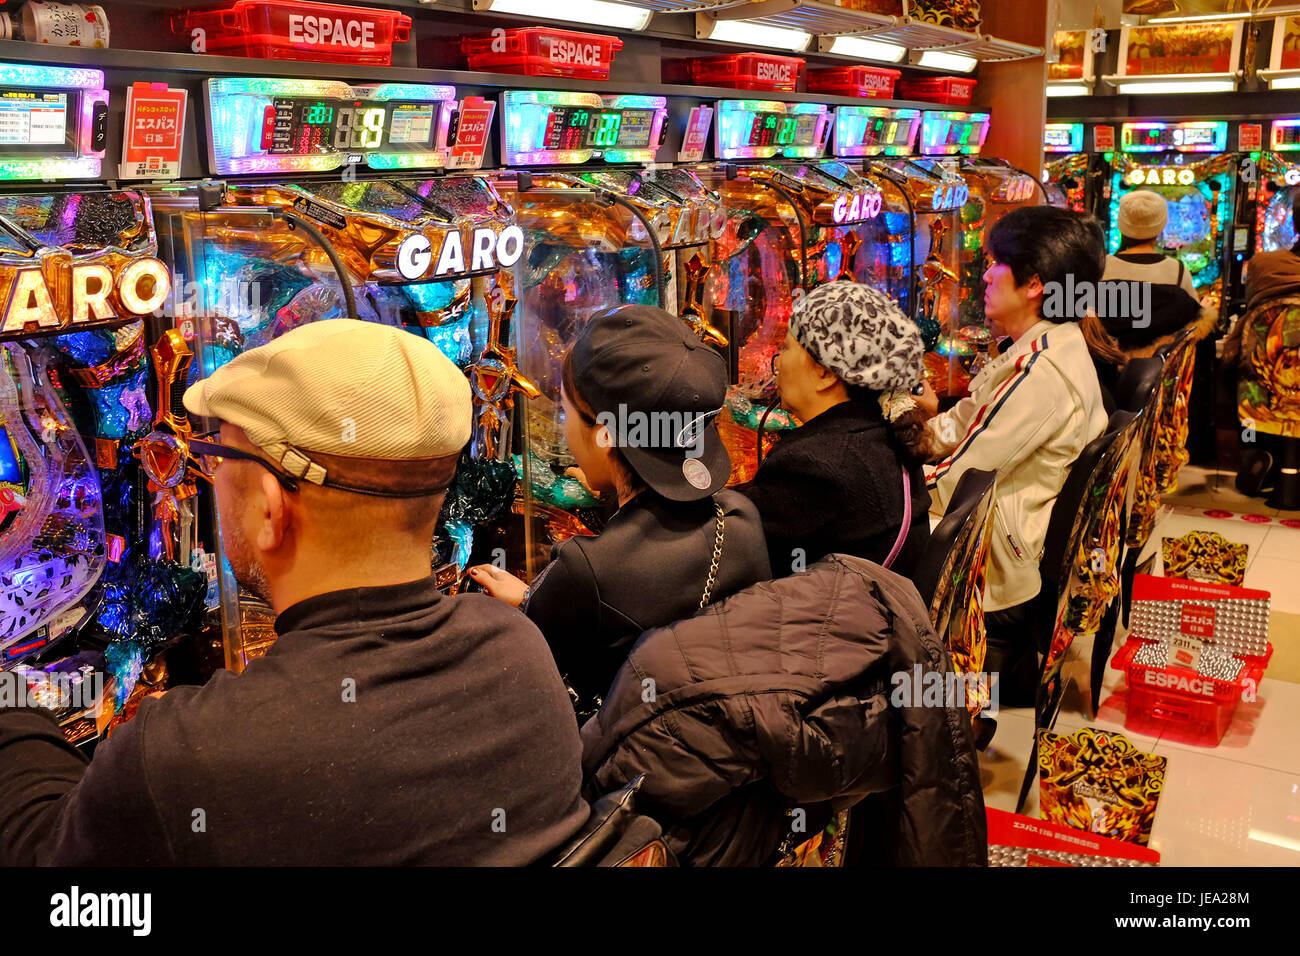 While gambling in Japan is technically illegal, patchinko parlors like the one pictured in Tokyo, Japan, offer a - Stock Image